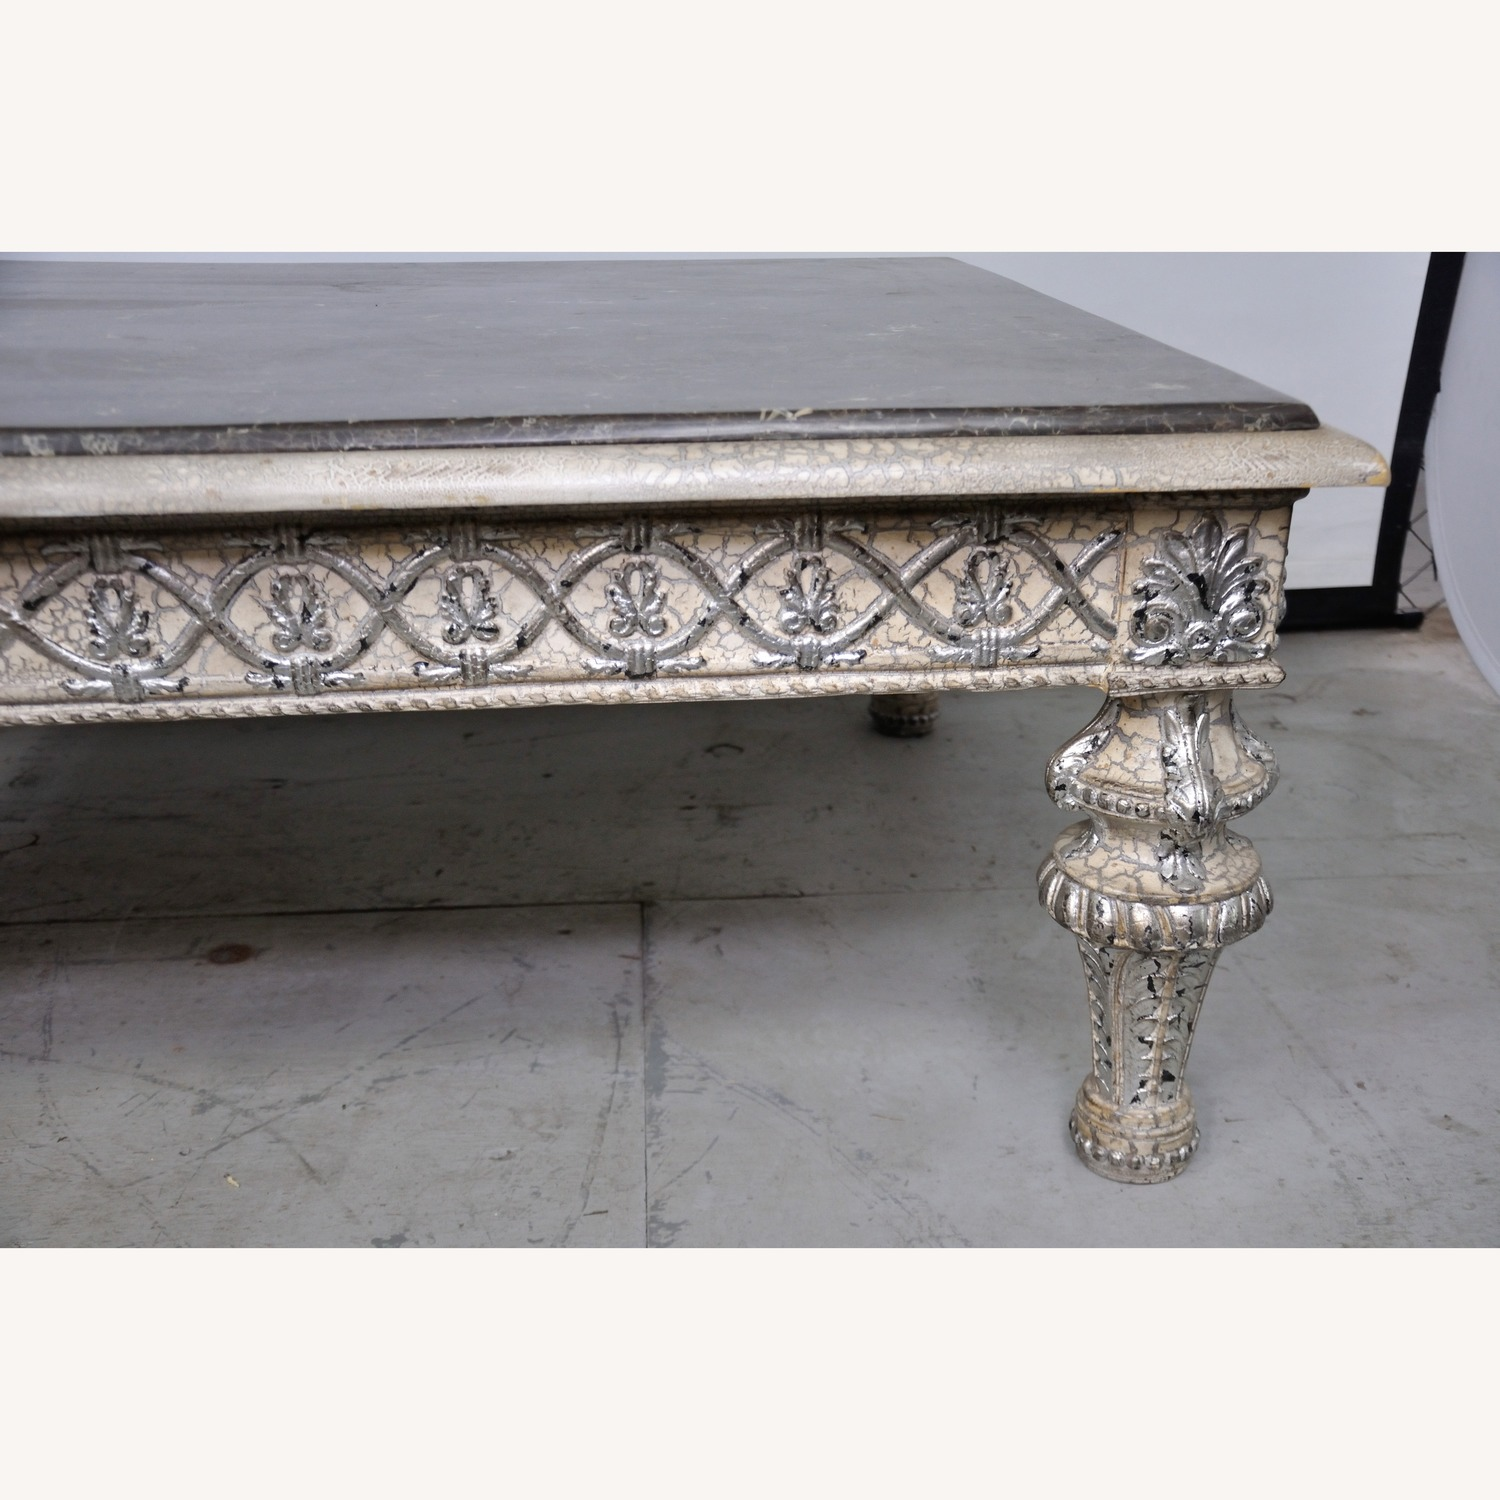 Vintage Silver Crackle Acanthus Coffee Table With Marble Top - image-6